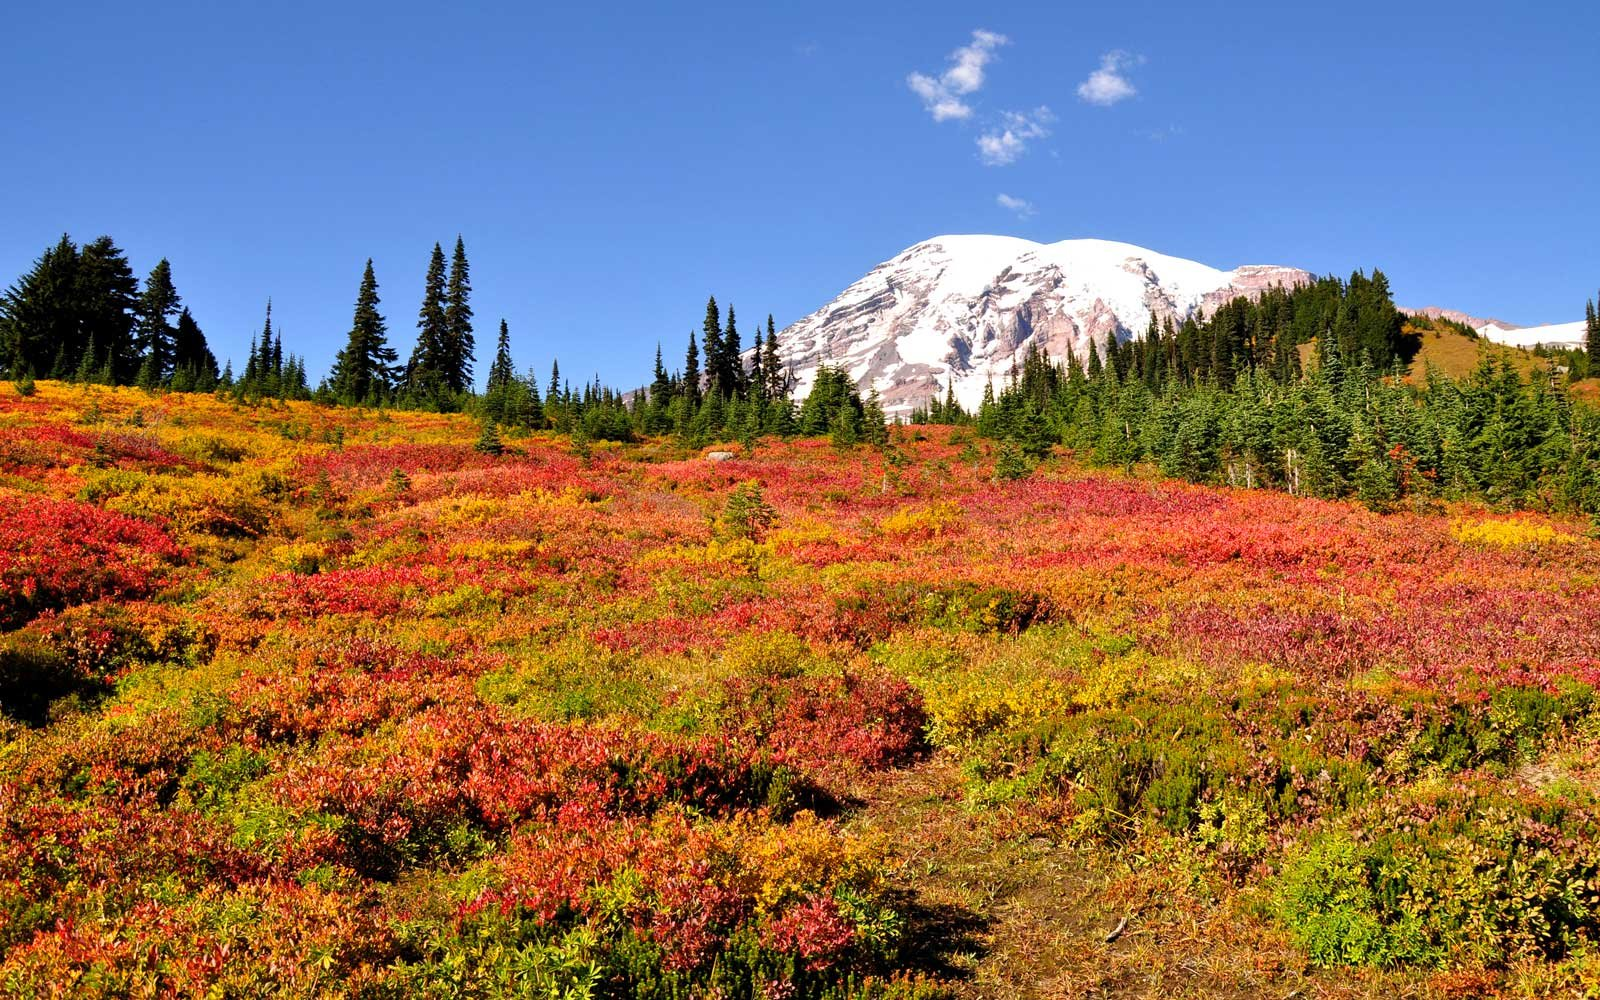 Mt. Rainier National Park: Washington